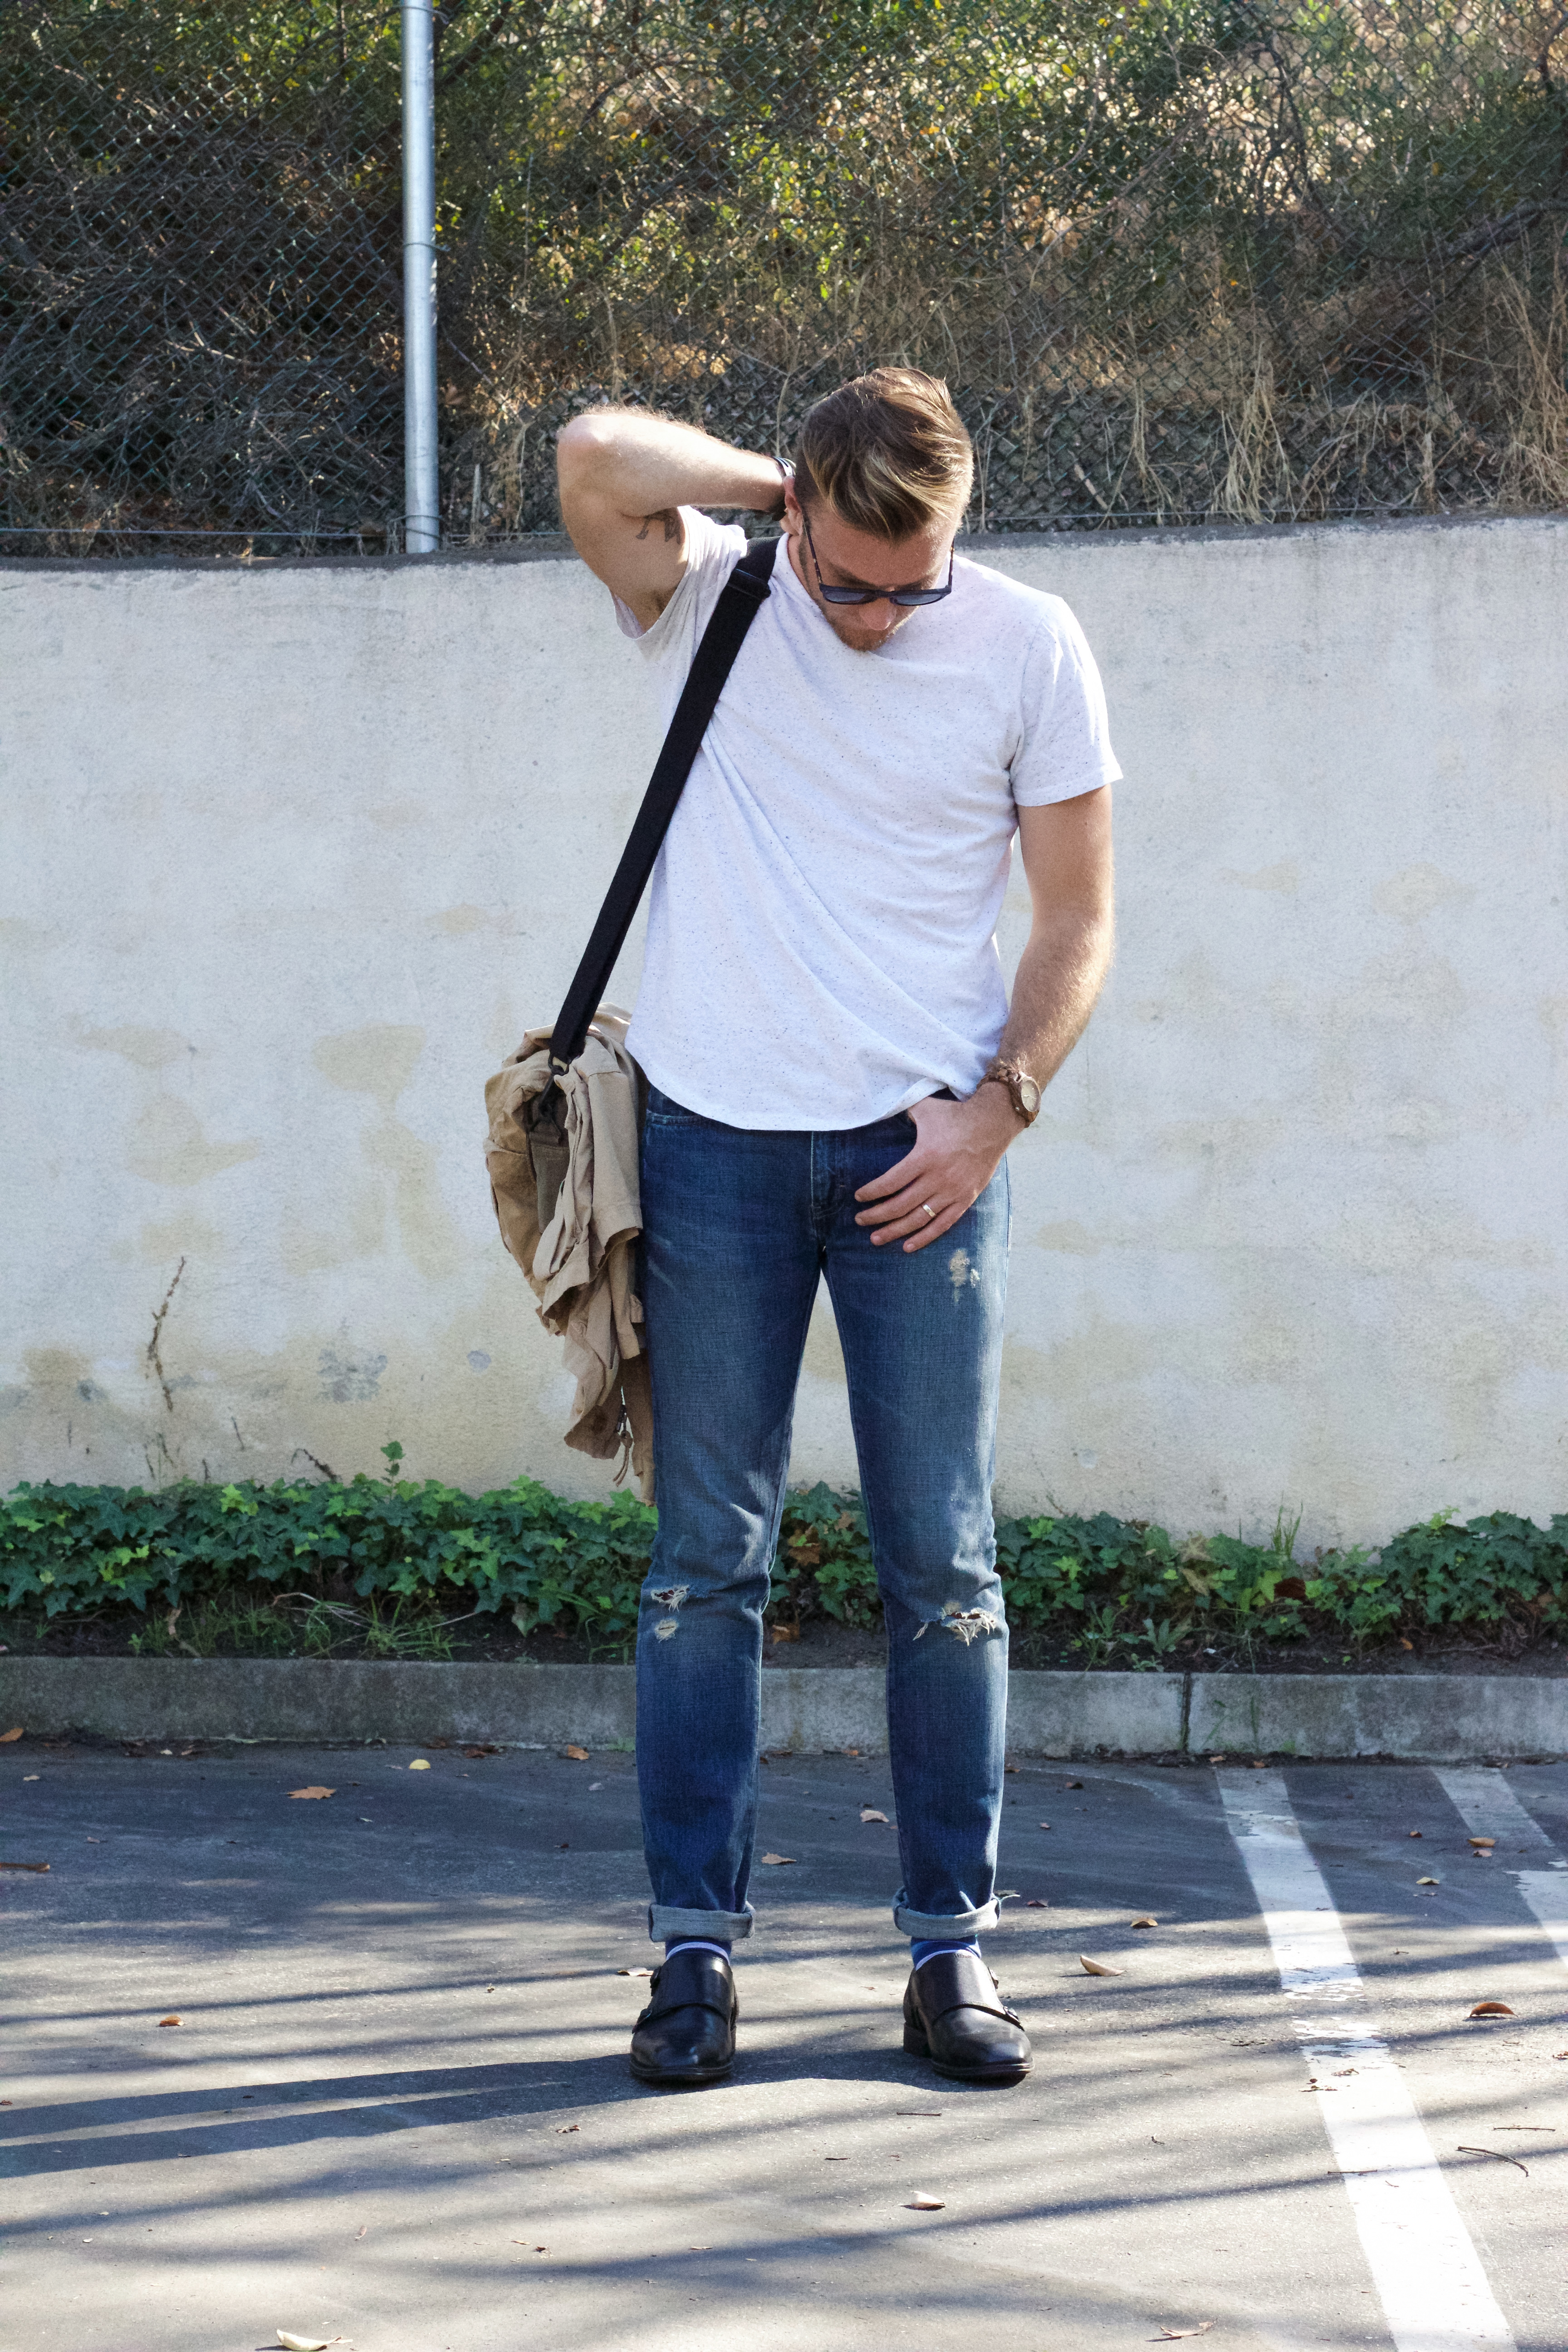 rockport-mens-fall-transition-outfit-13